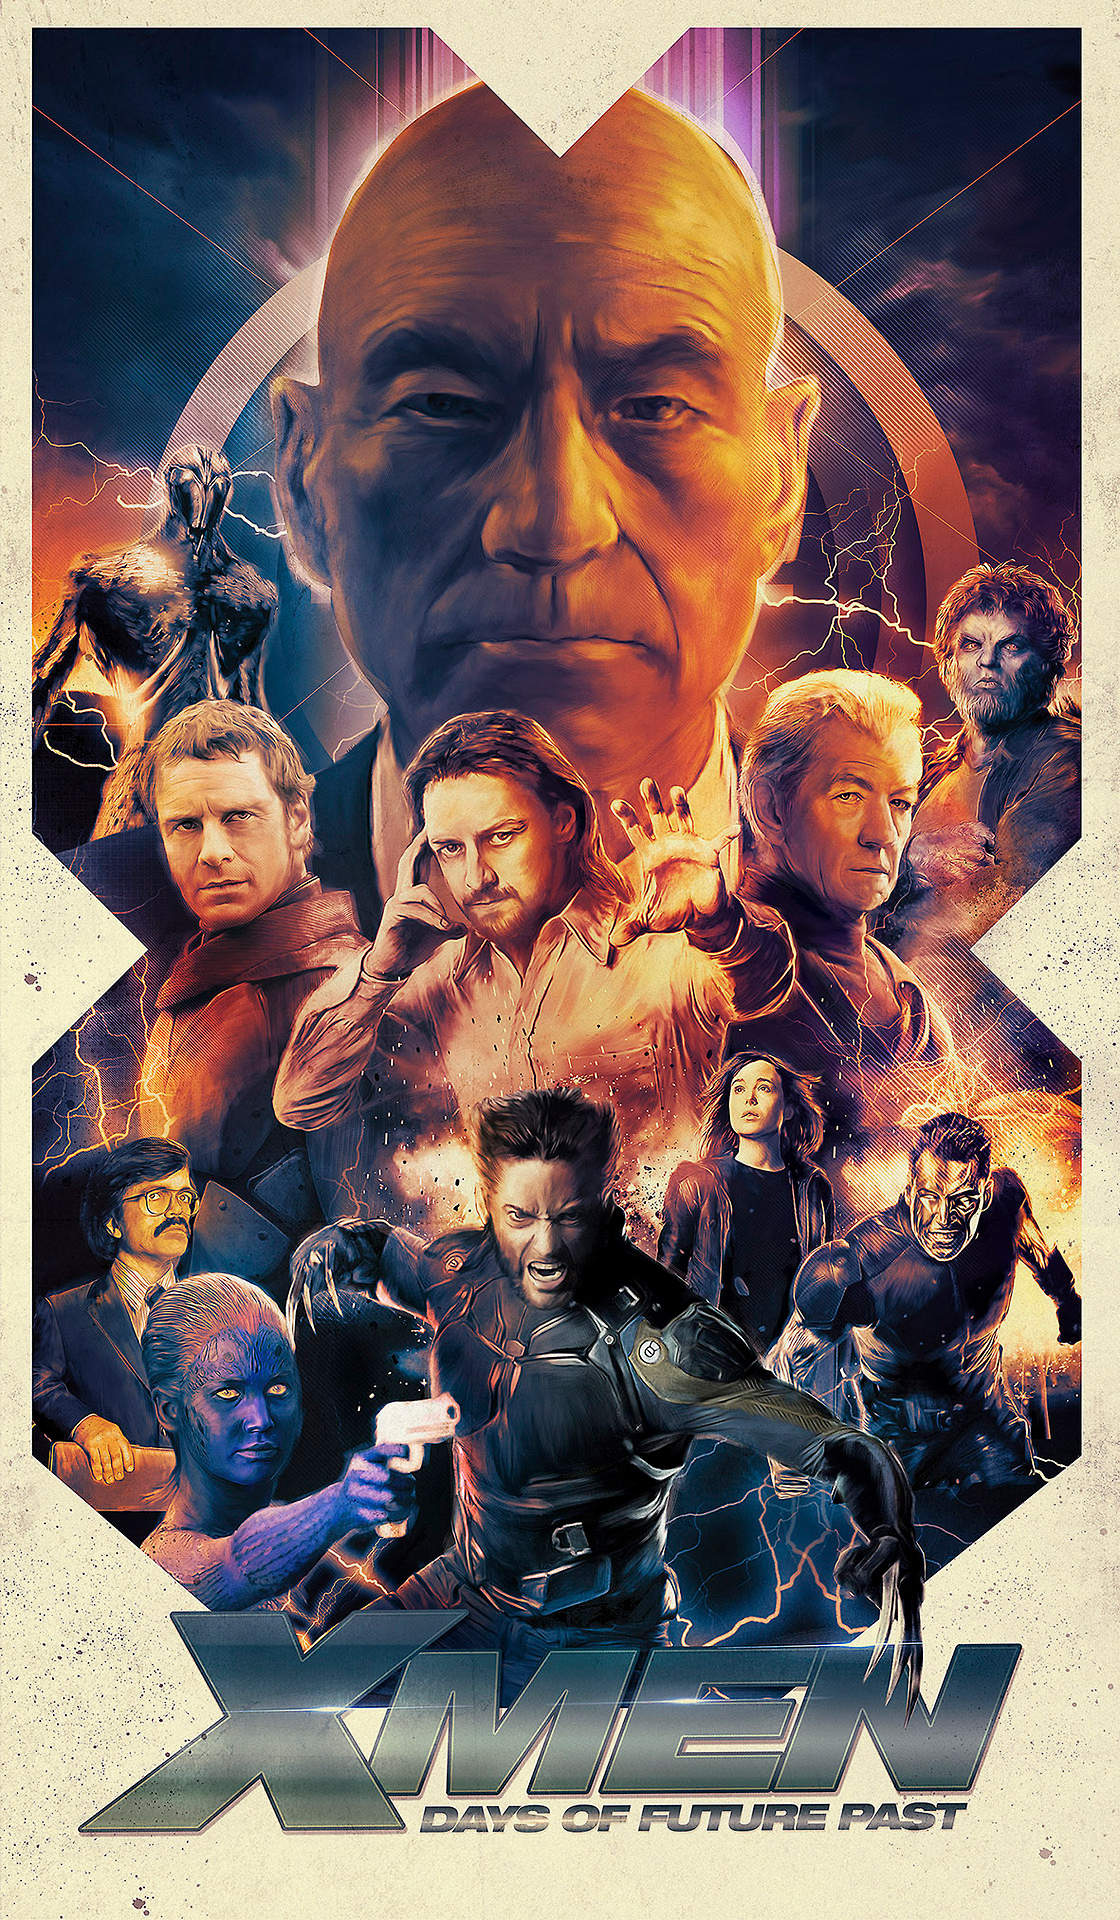 x men days of future past movie poster - x-men: days of future past